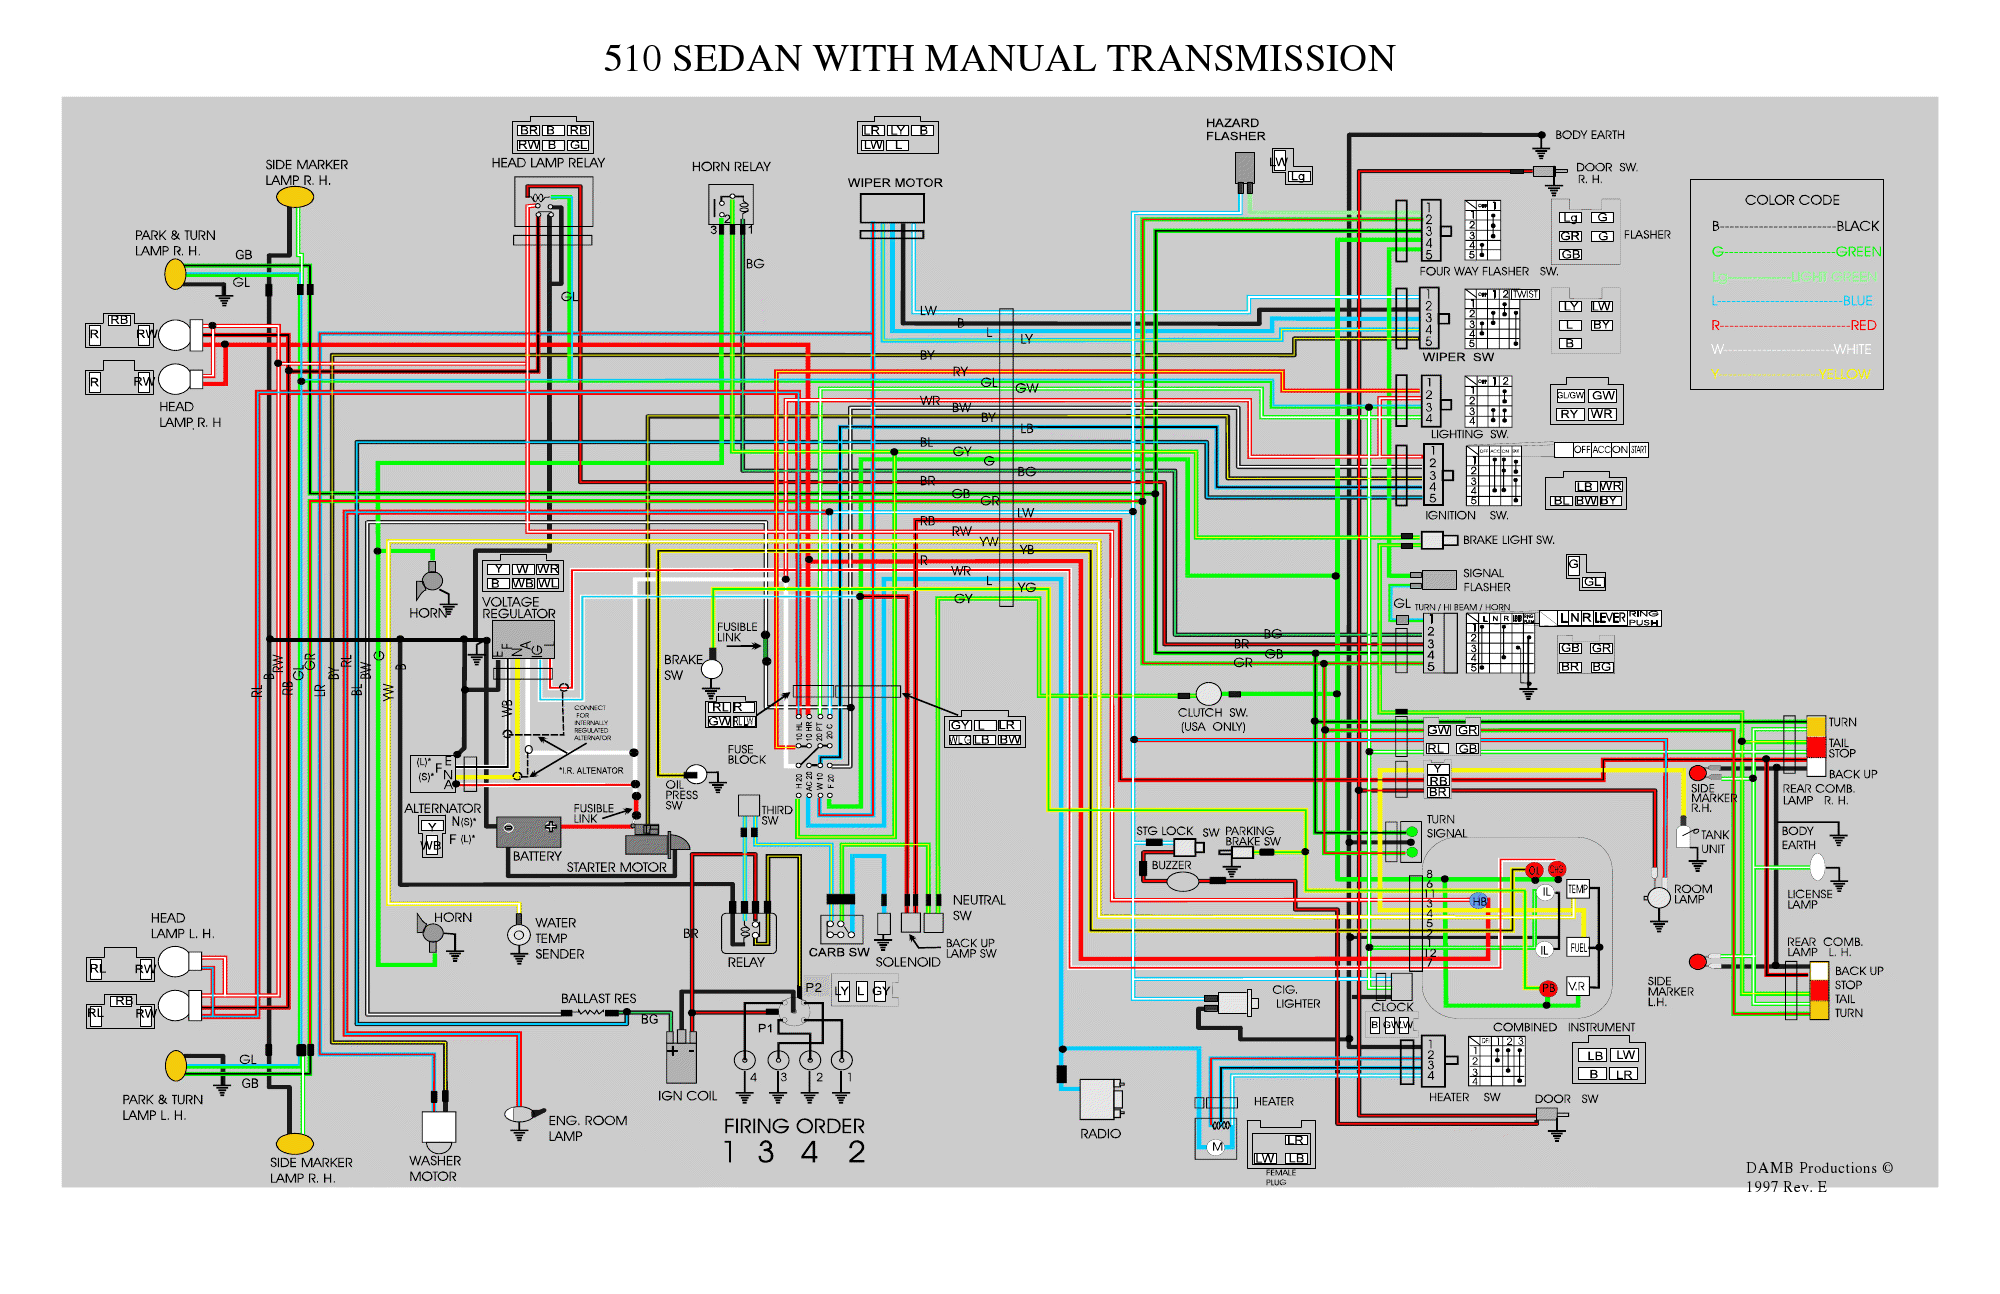 datsun_510_wiring_diagram?resize=665%2C430 ez wire harness diagram ez wiring diagrams collection ez wiring 12 circuit diagram at edmiracle.co